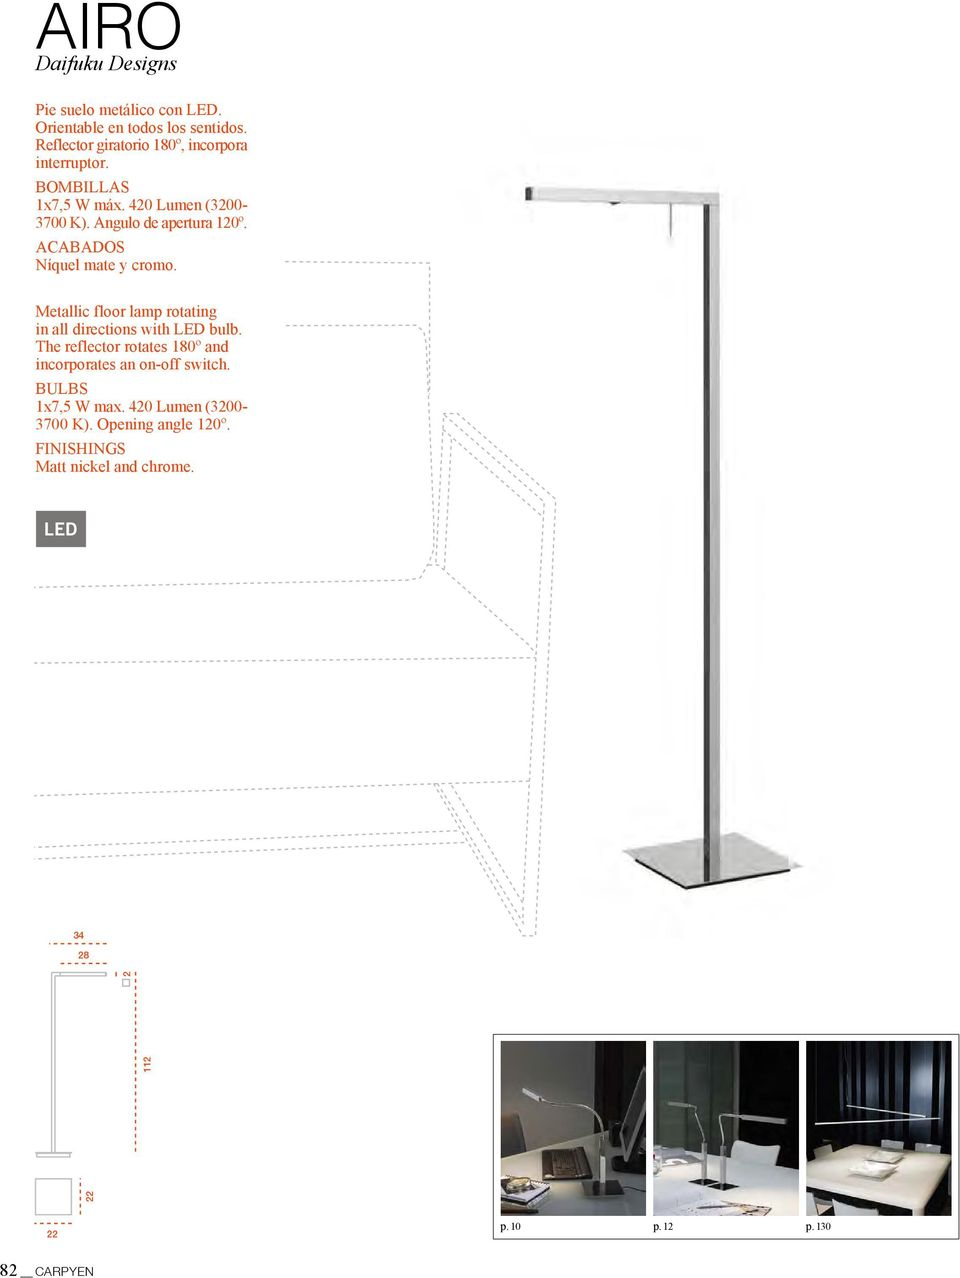 ACABADOS Níquel mate y cromo. Metallic floor lamp rotating in all directions with LED bulb.